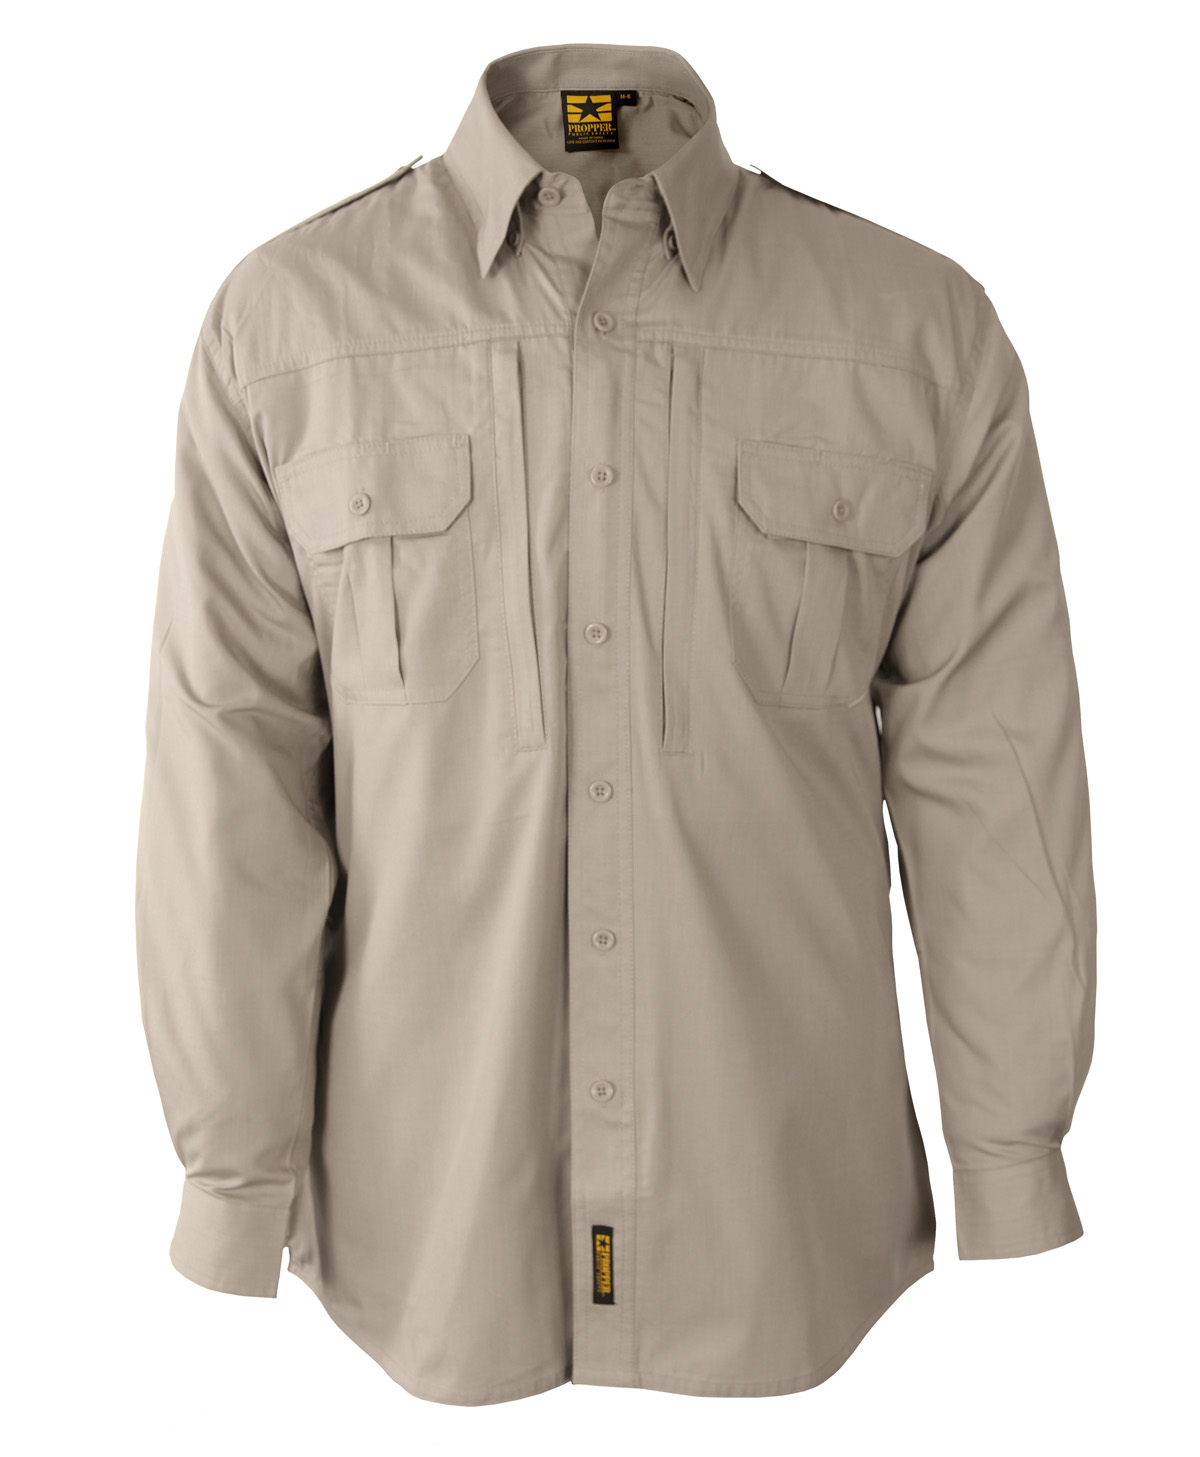 Personalize these men's lightweight long-sleeve shirts from Cabela's with one of our distinctive designs, or embroider your organization logo on these shirts.